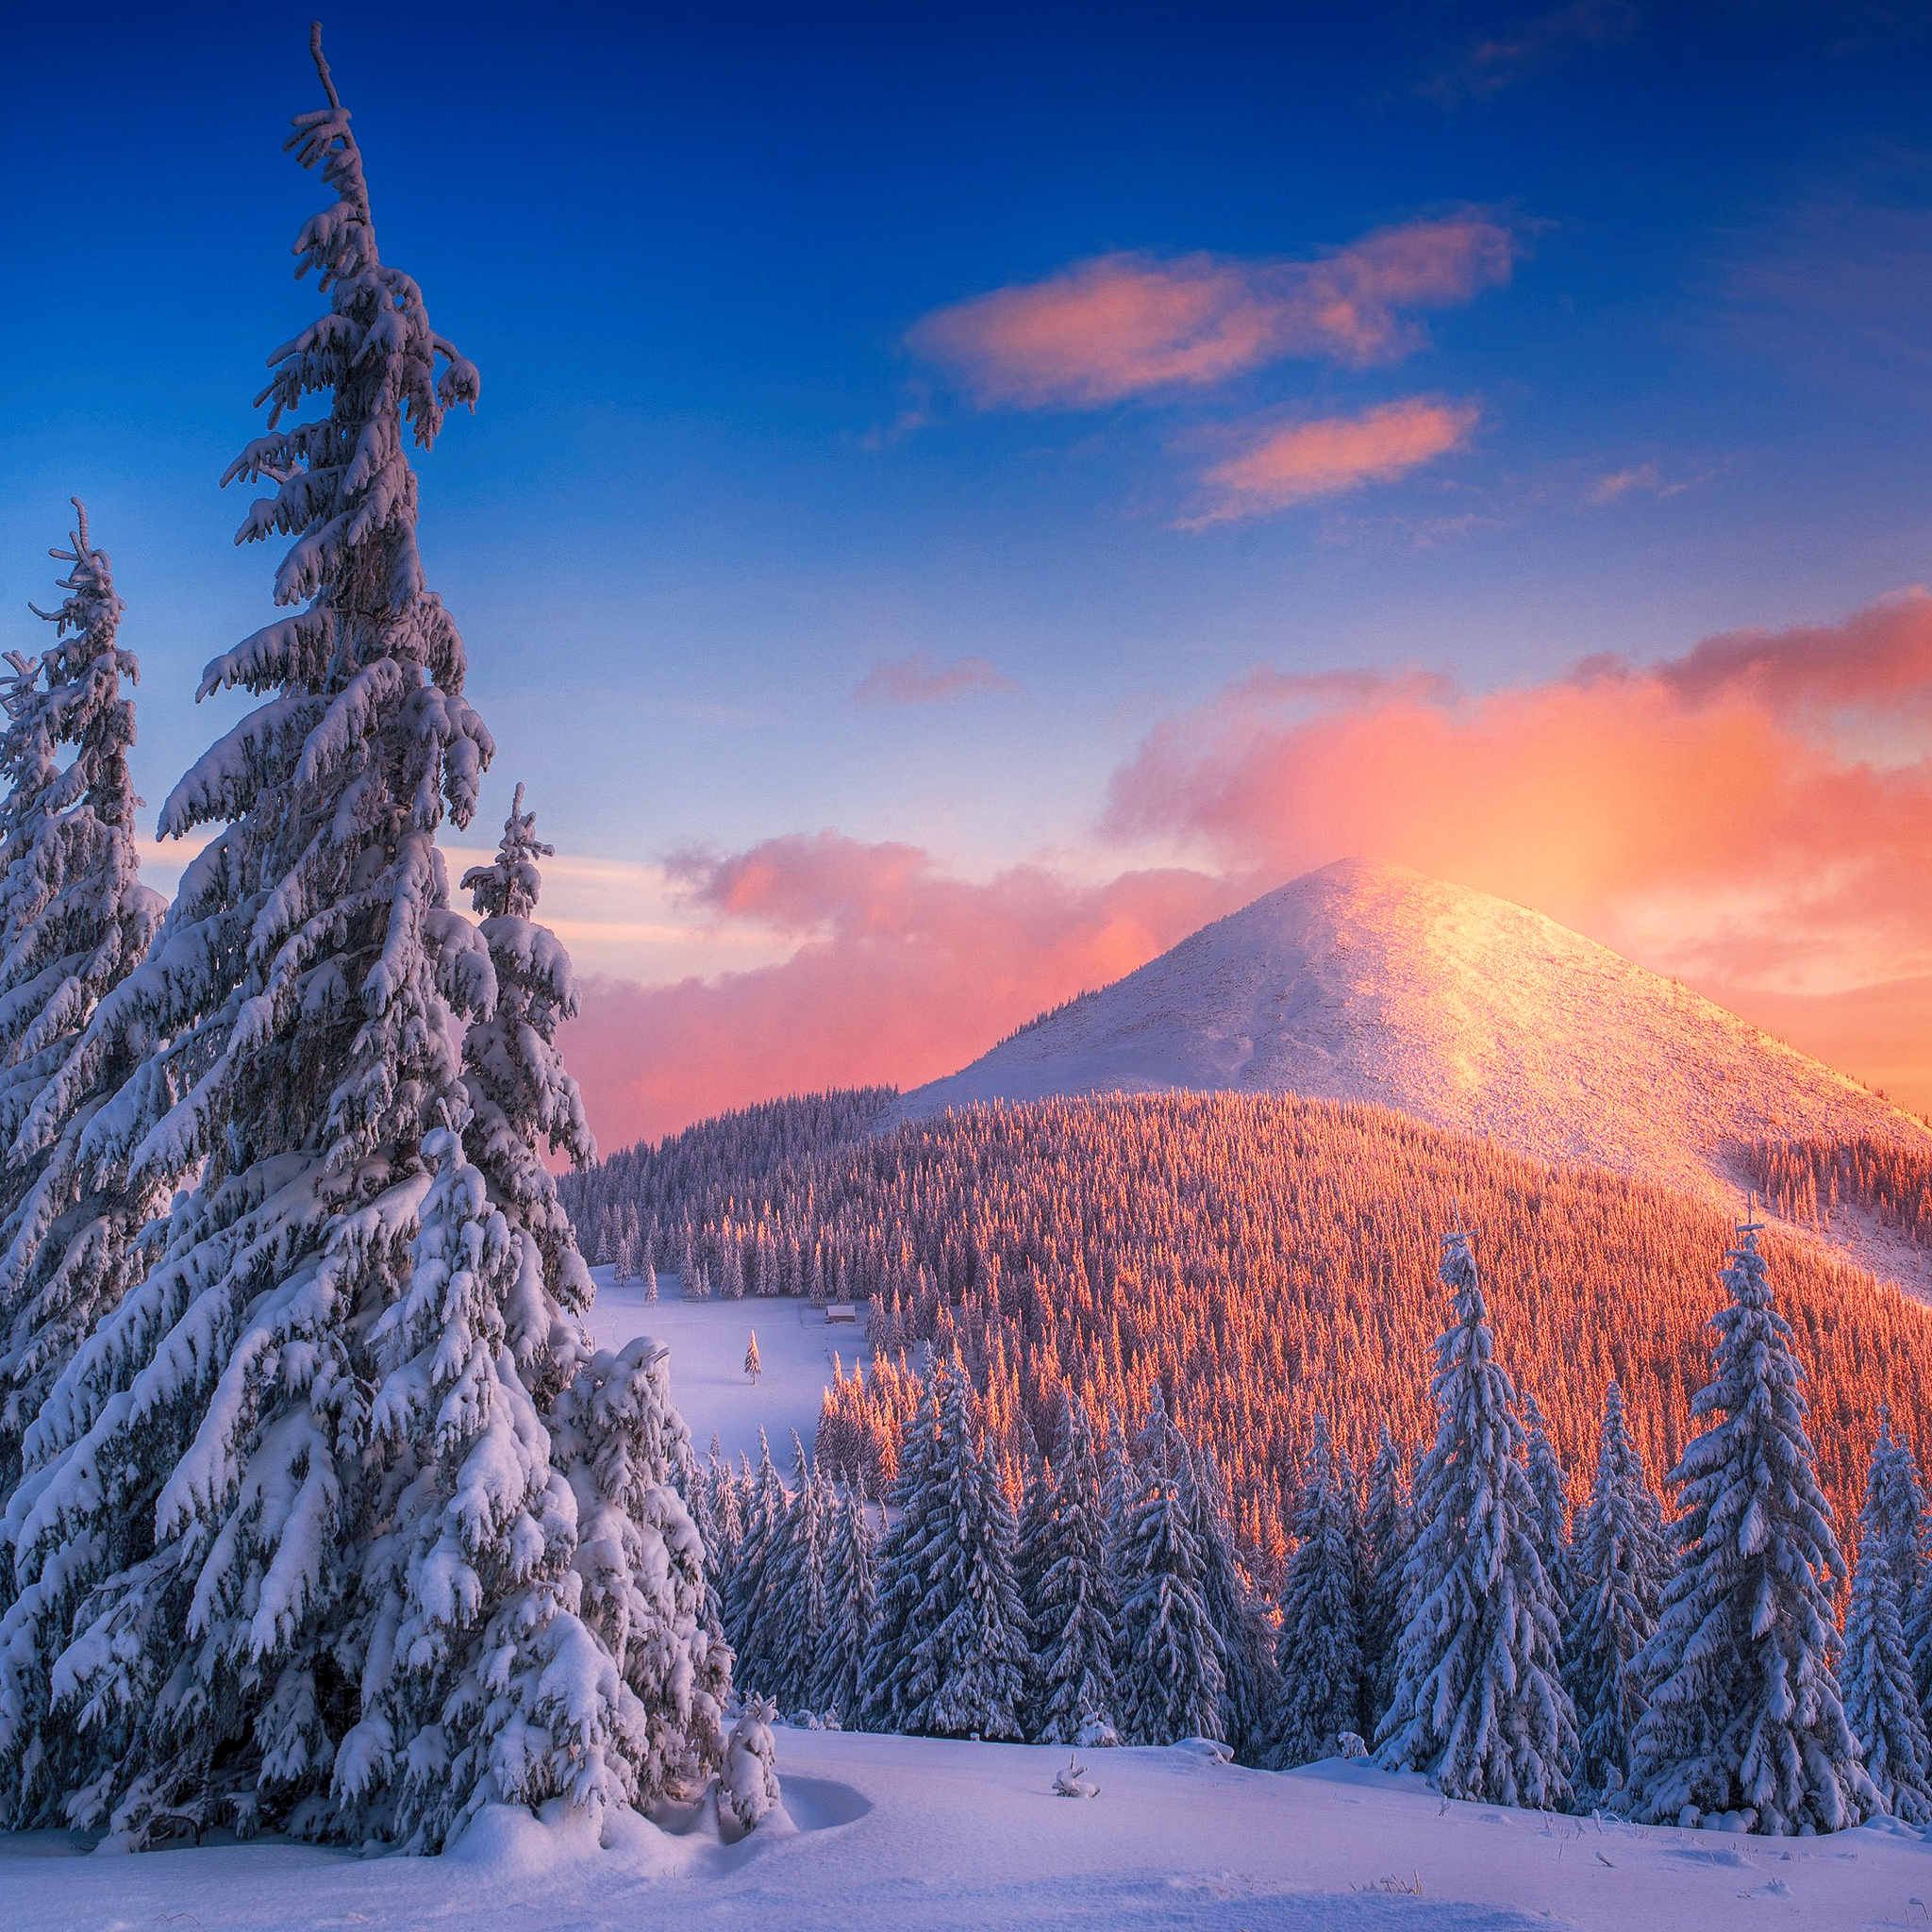 snowy-pine-trees-and-mountains-4k-9m.jpg